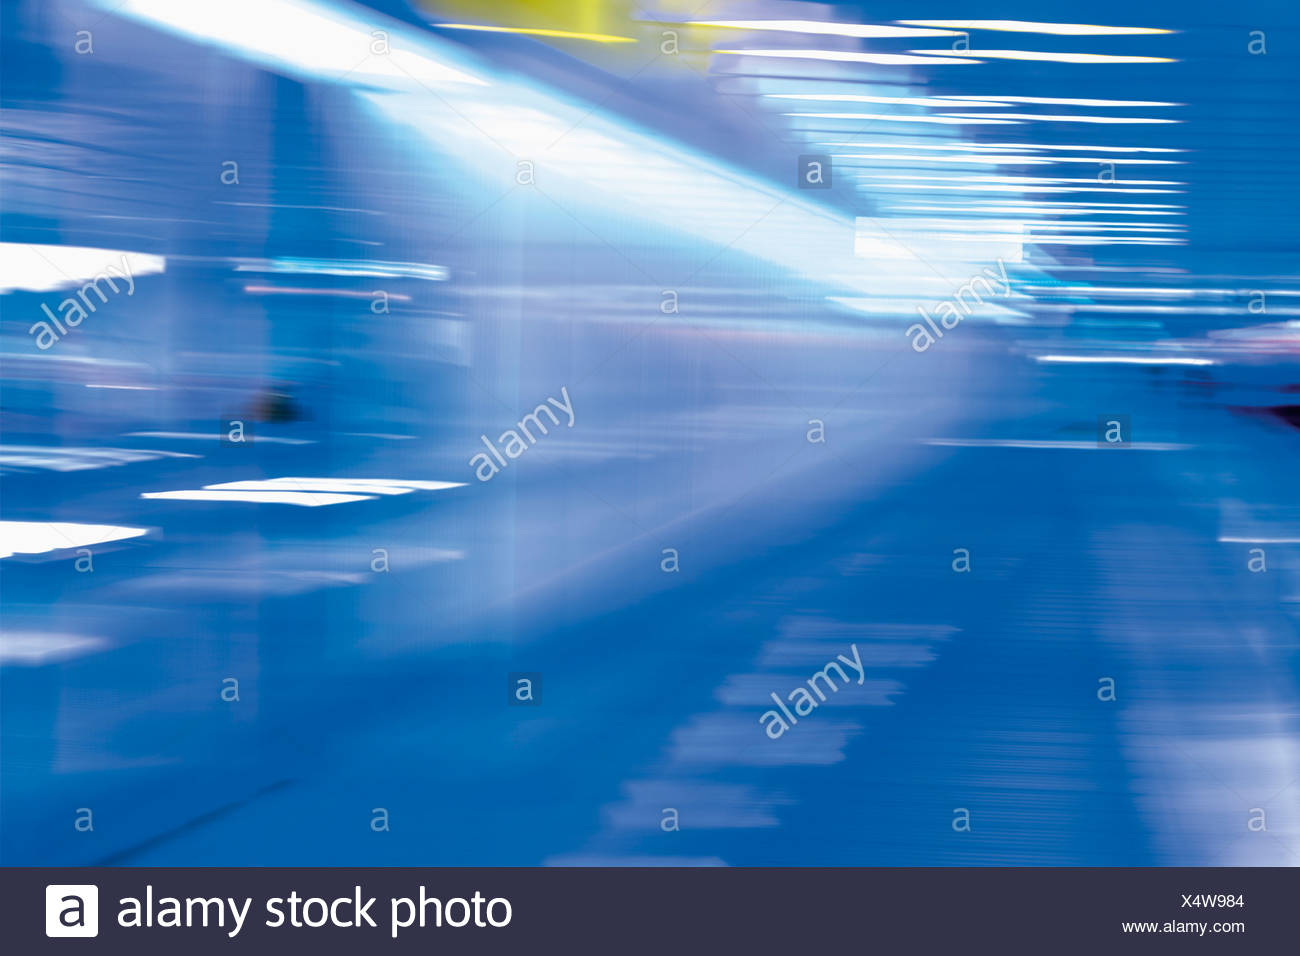 Germany, Bavaria, Munich, Abstract pattern of neon lights - Stock Image